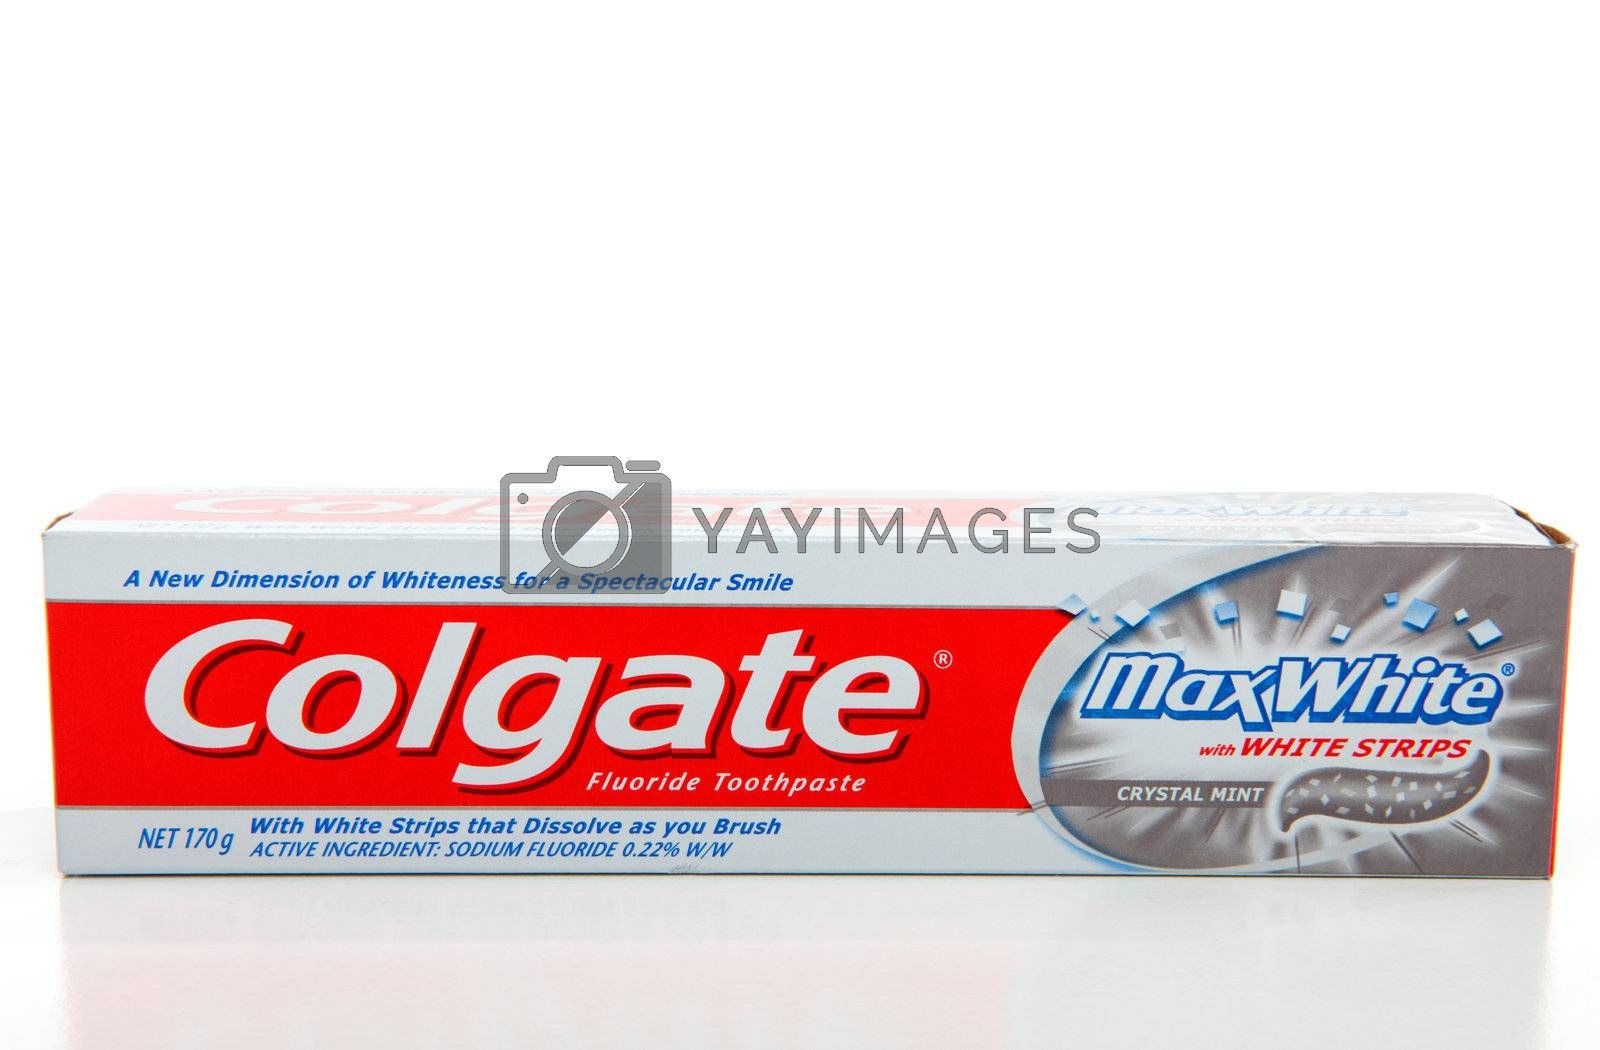 Colgate Max White Whitening Toothpaste Royalty Free Stock Image